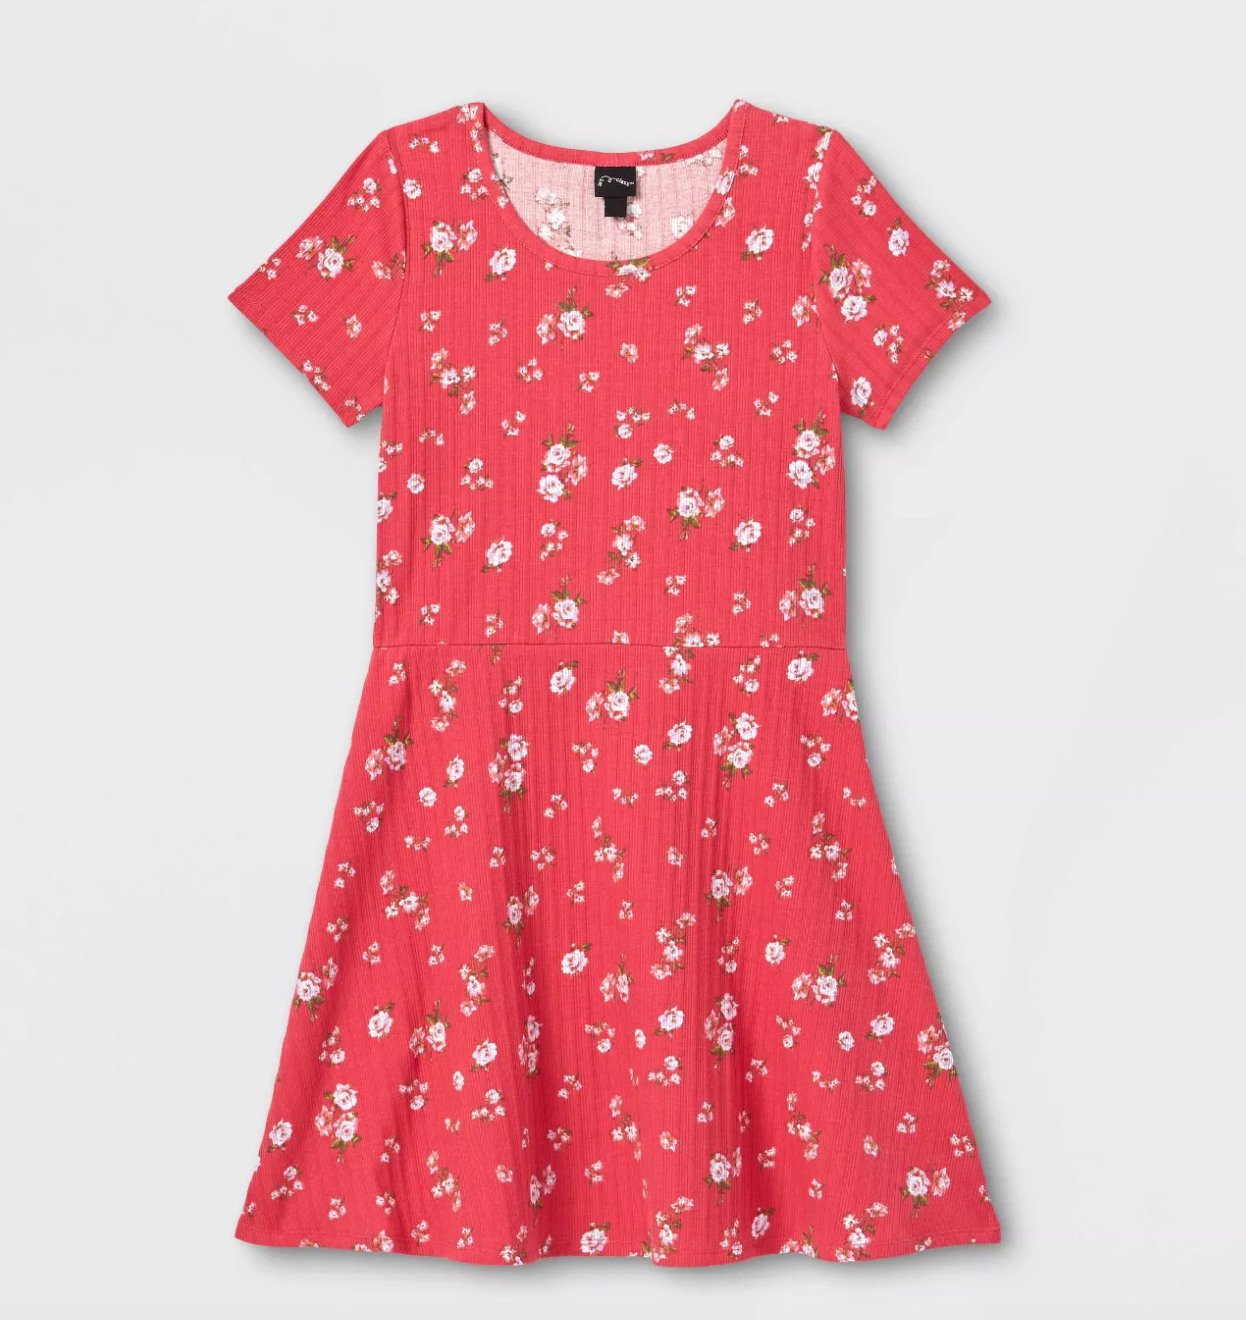 a red skater dress with small flowers on it